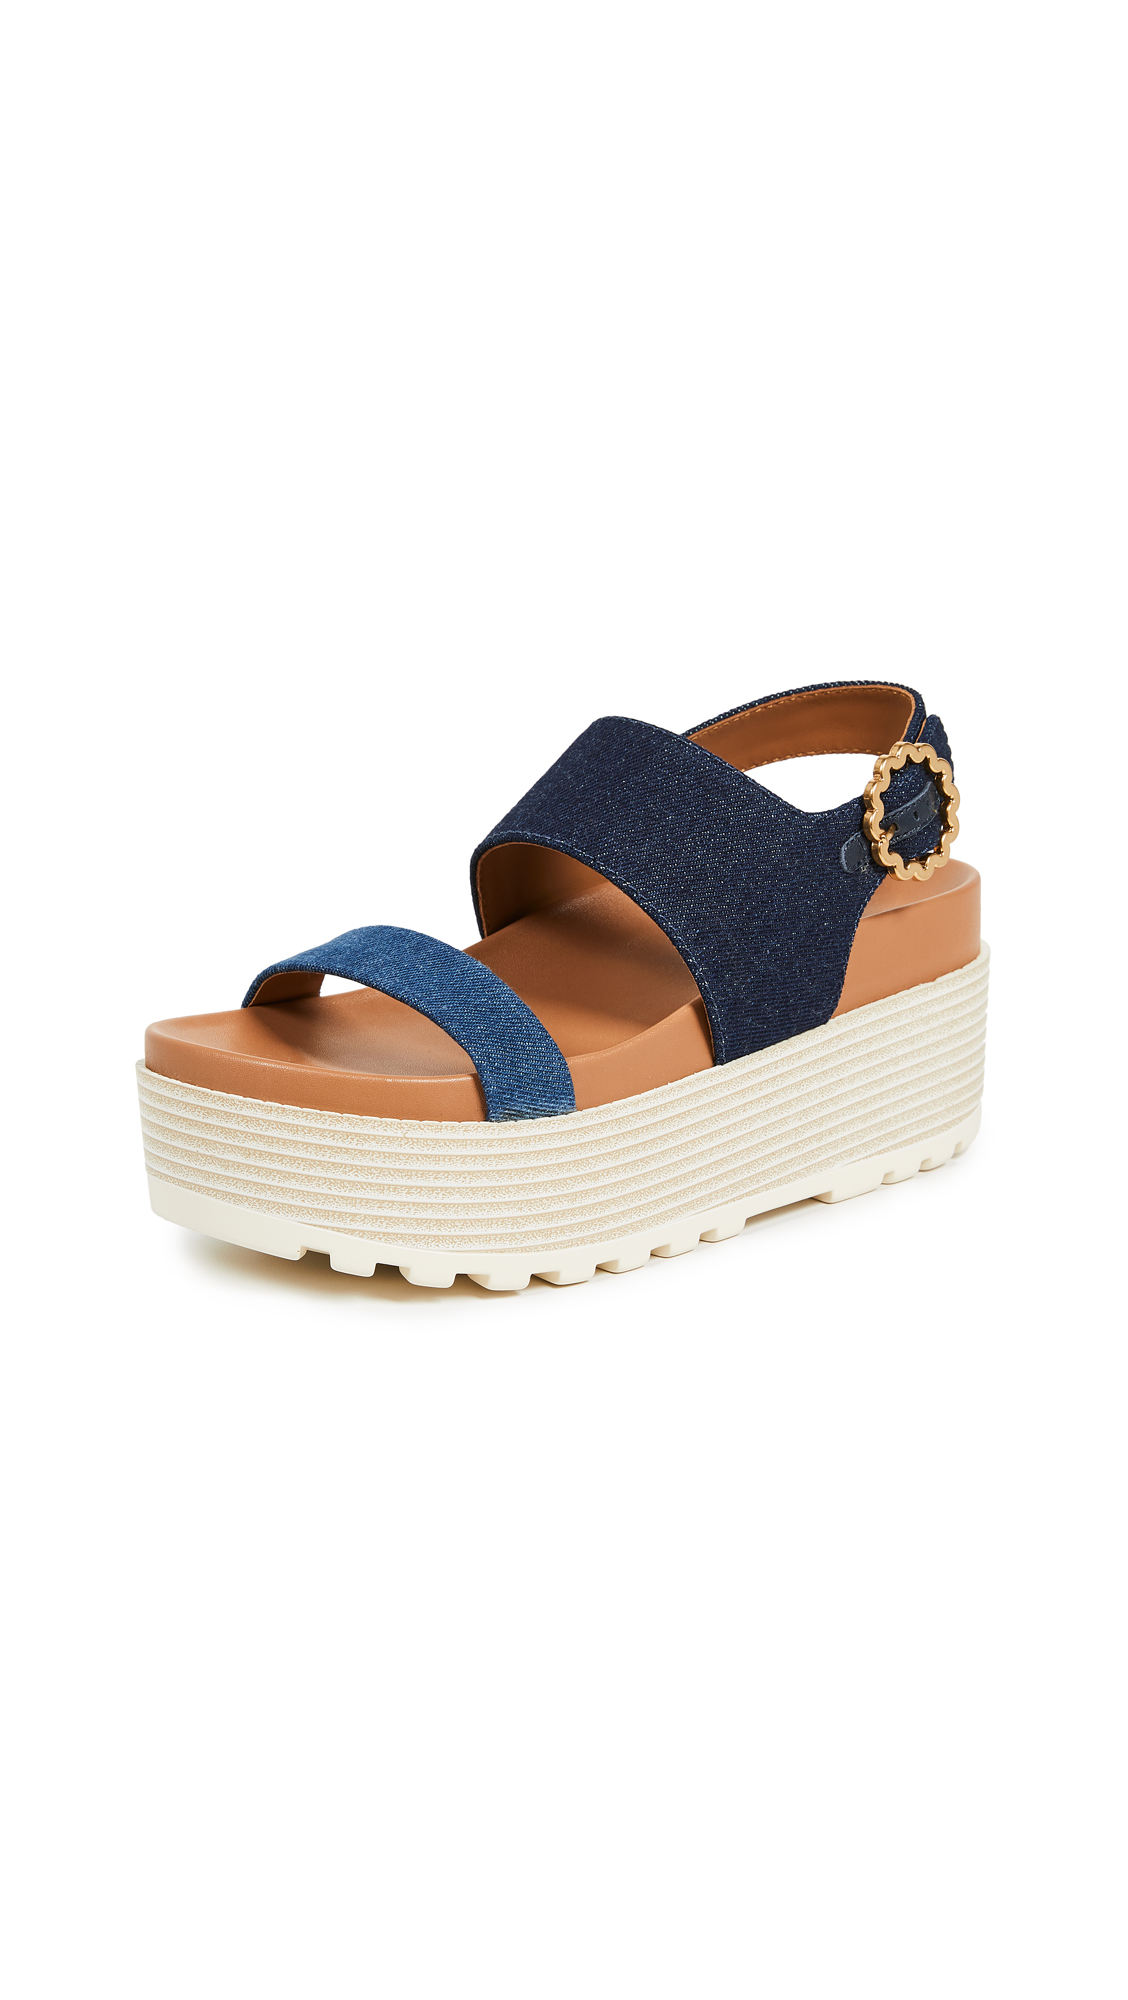 See by Chloe Jenna Platform Sandals - Denim/Navy